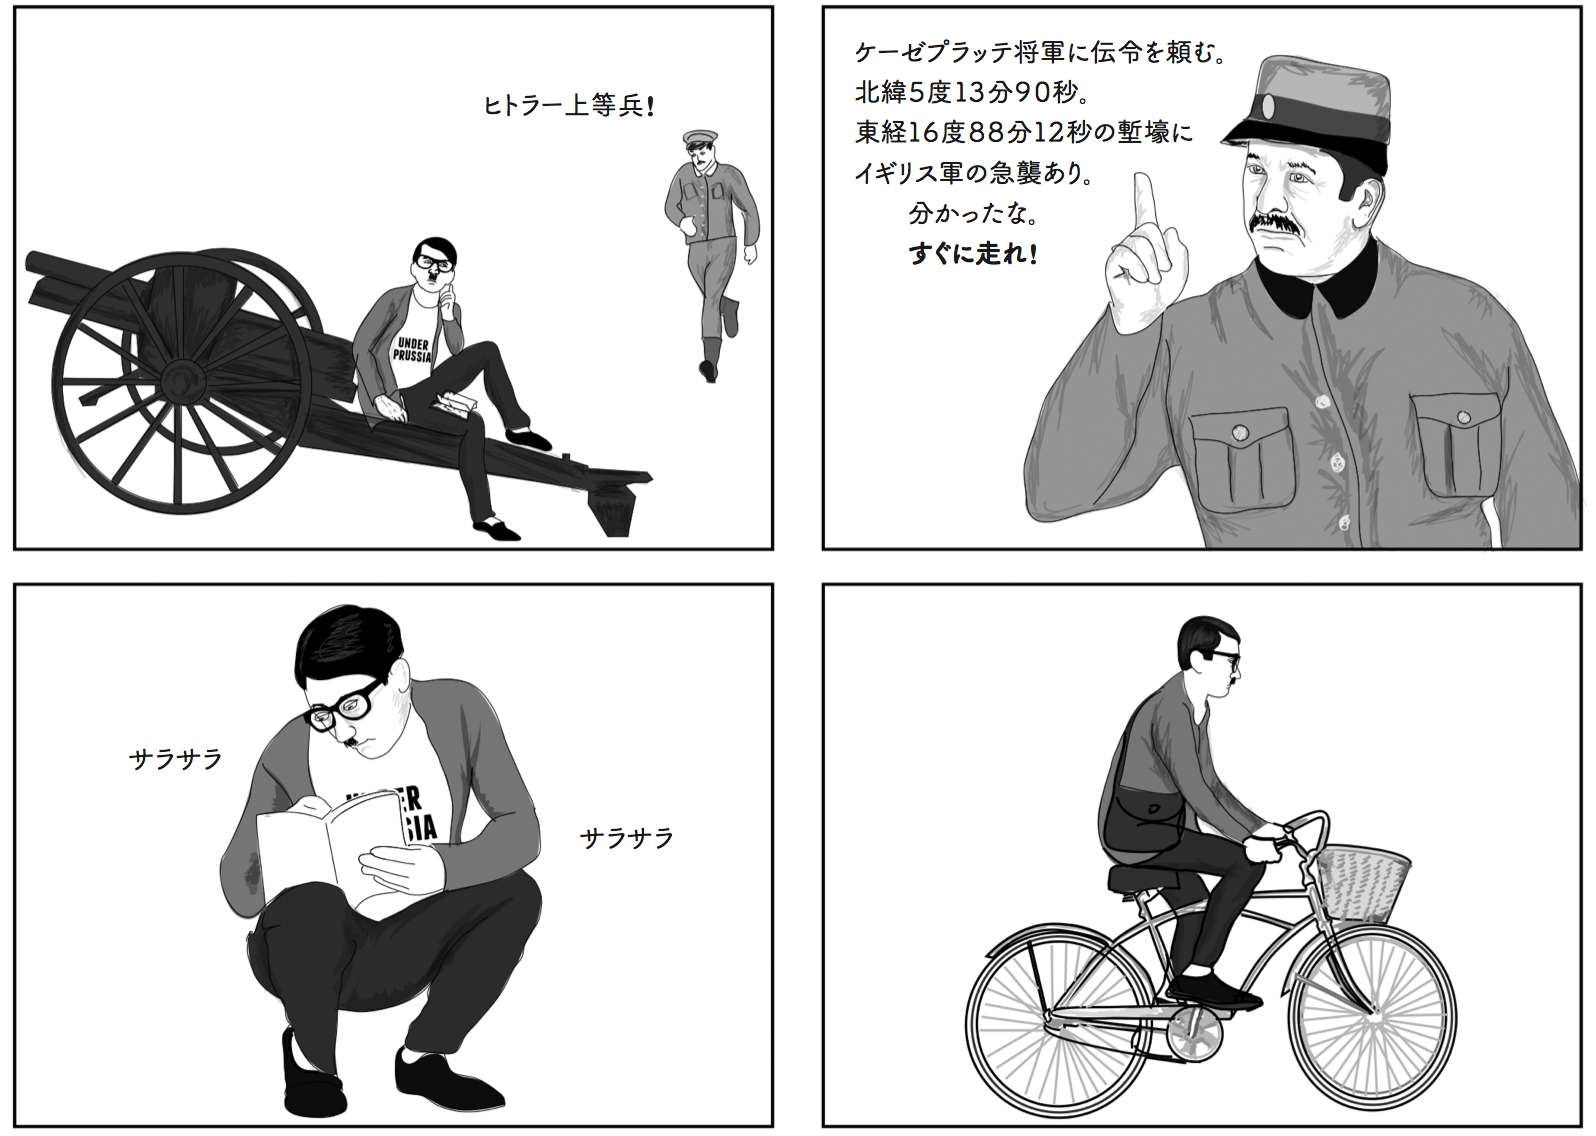 hipster hitler japanese translation